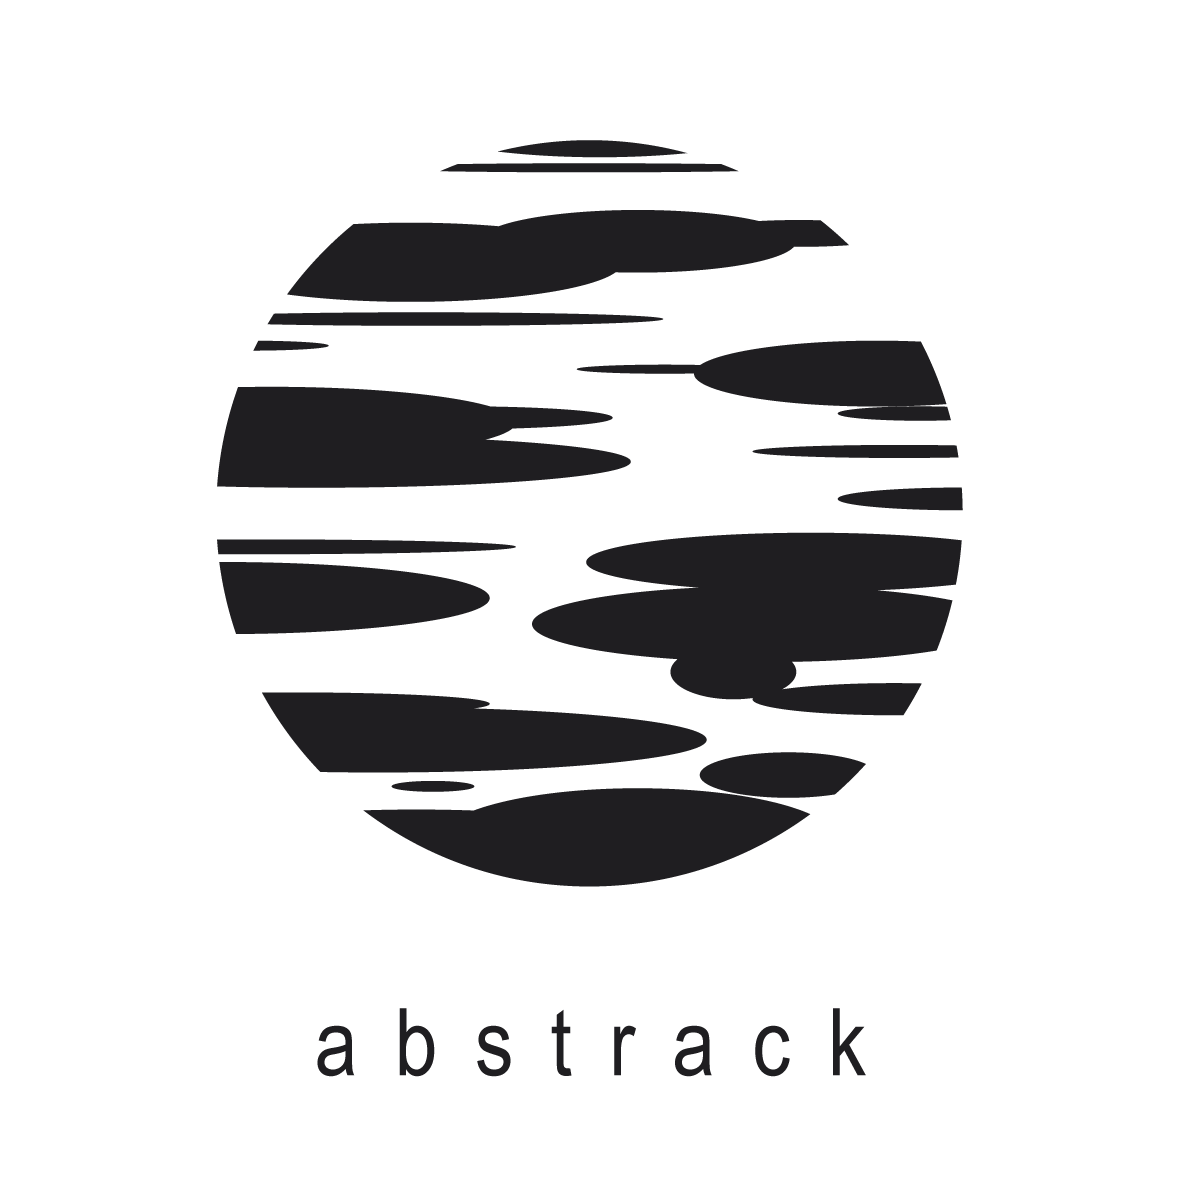 Abstrack